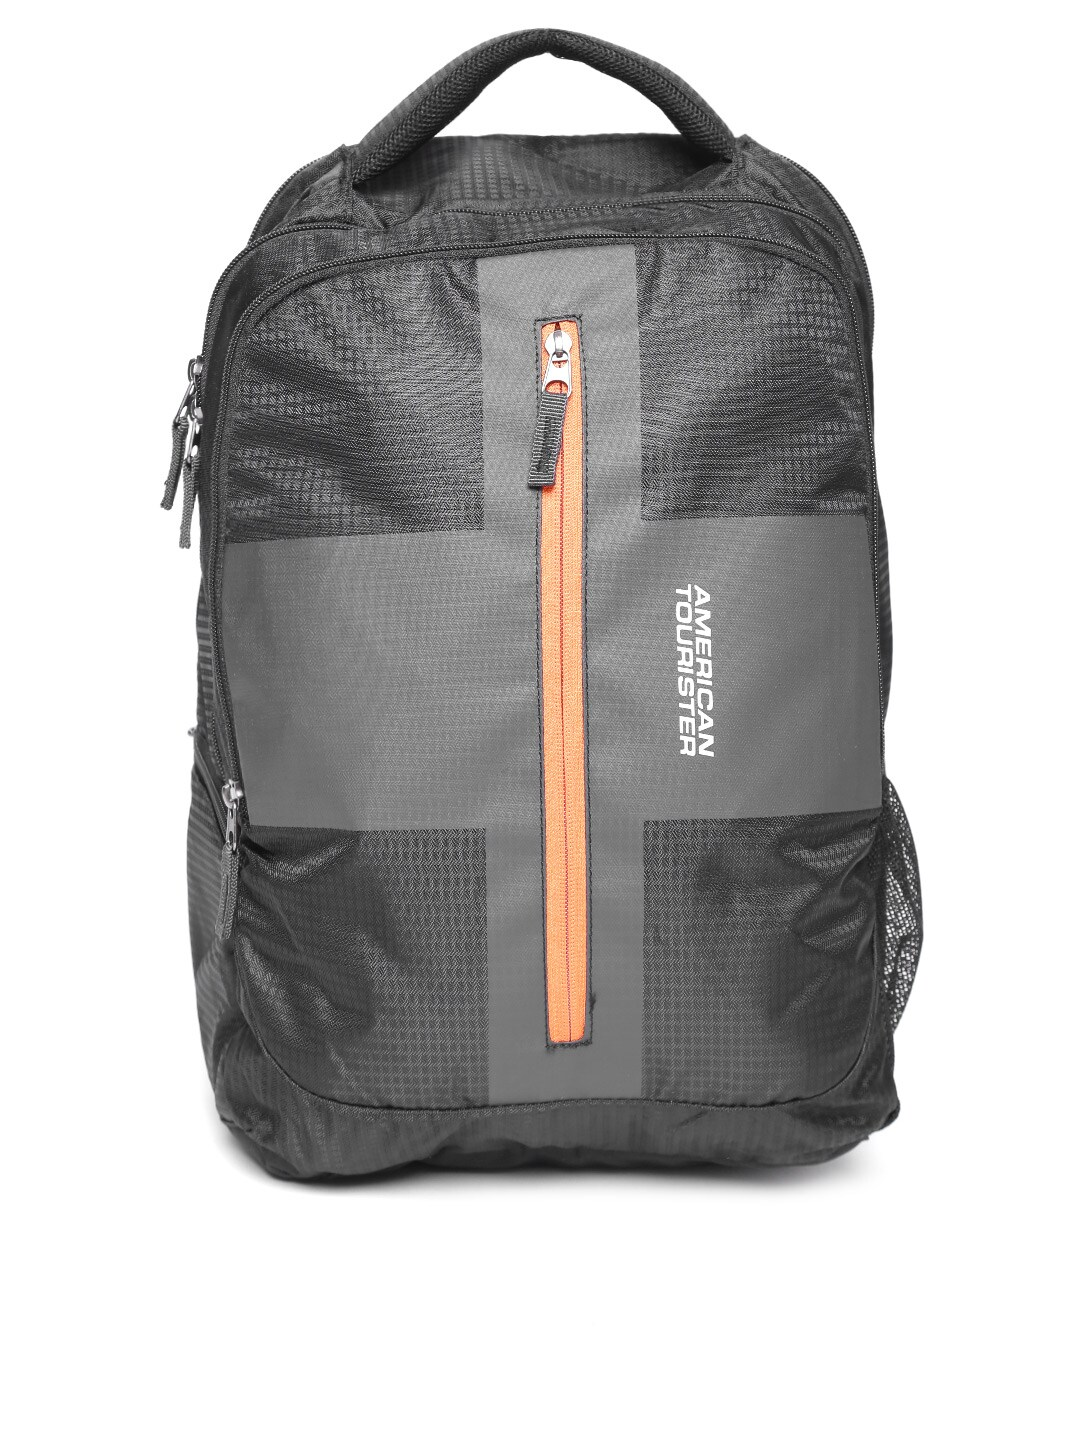 Buy American Tourister Black & Charcoal Grey Printed Unisex Backpack Online at Best Price in India